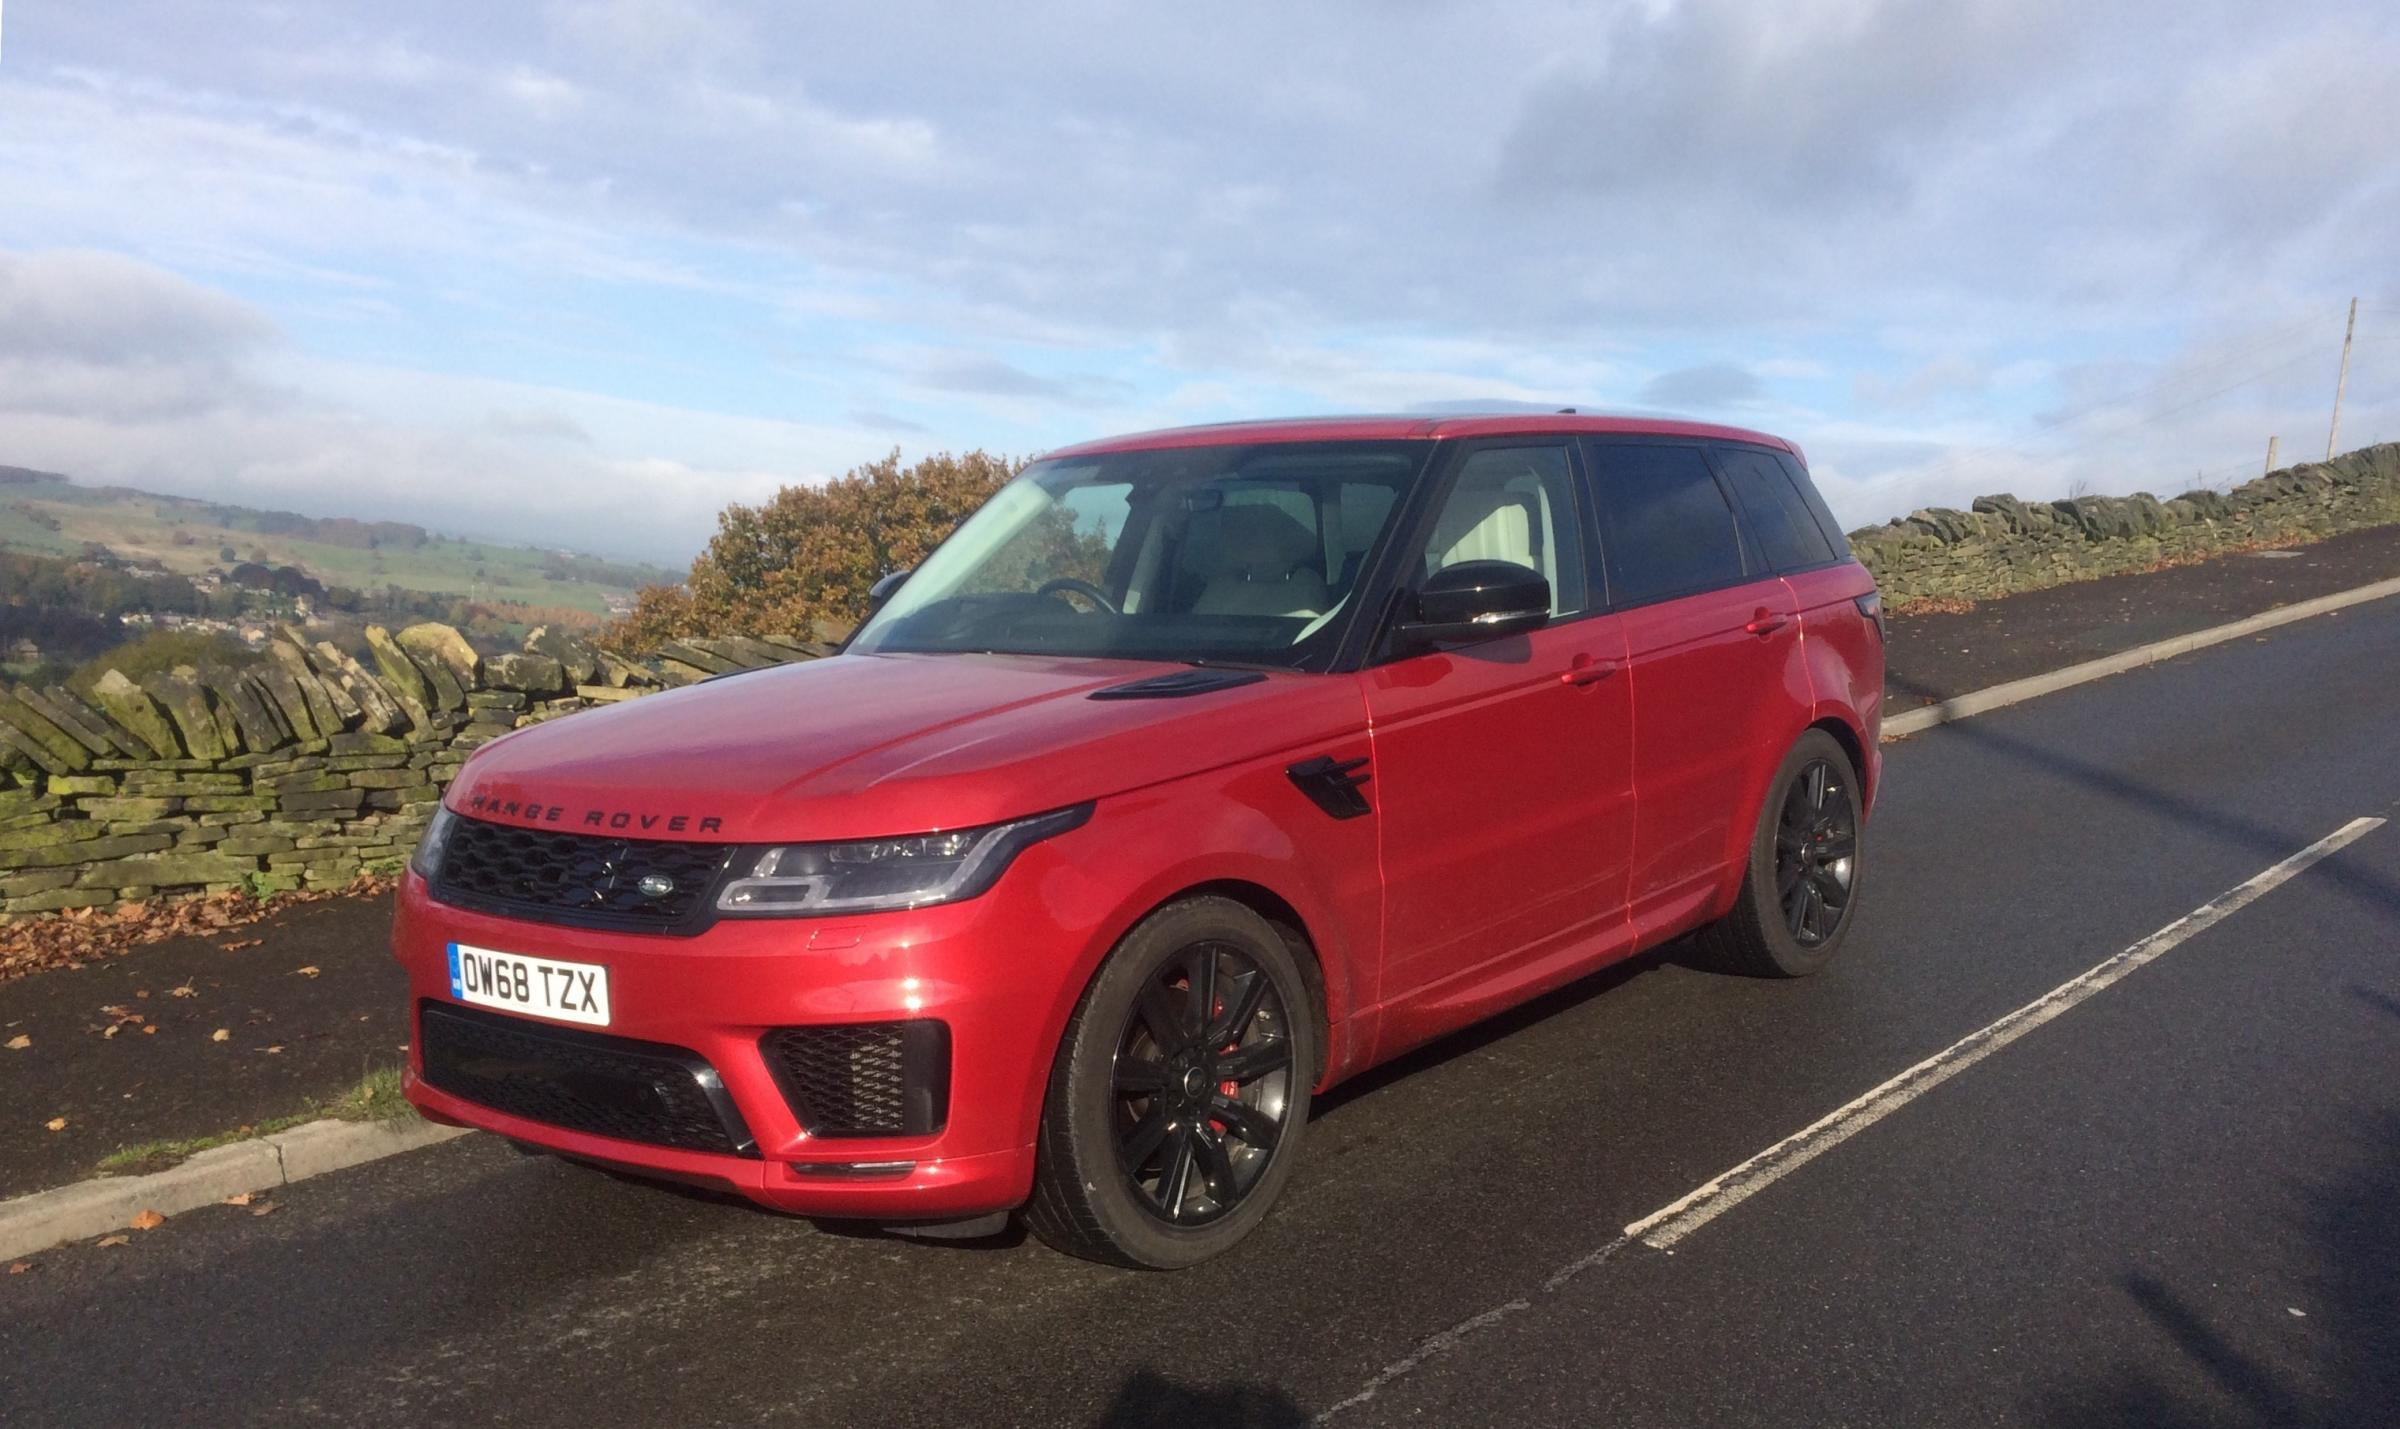 CAR REVIEW: Range Rover Sport plug-in hybrid